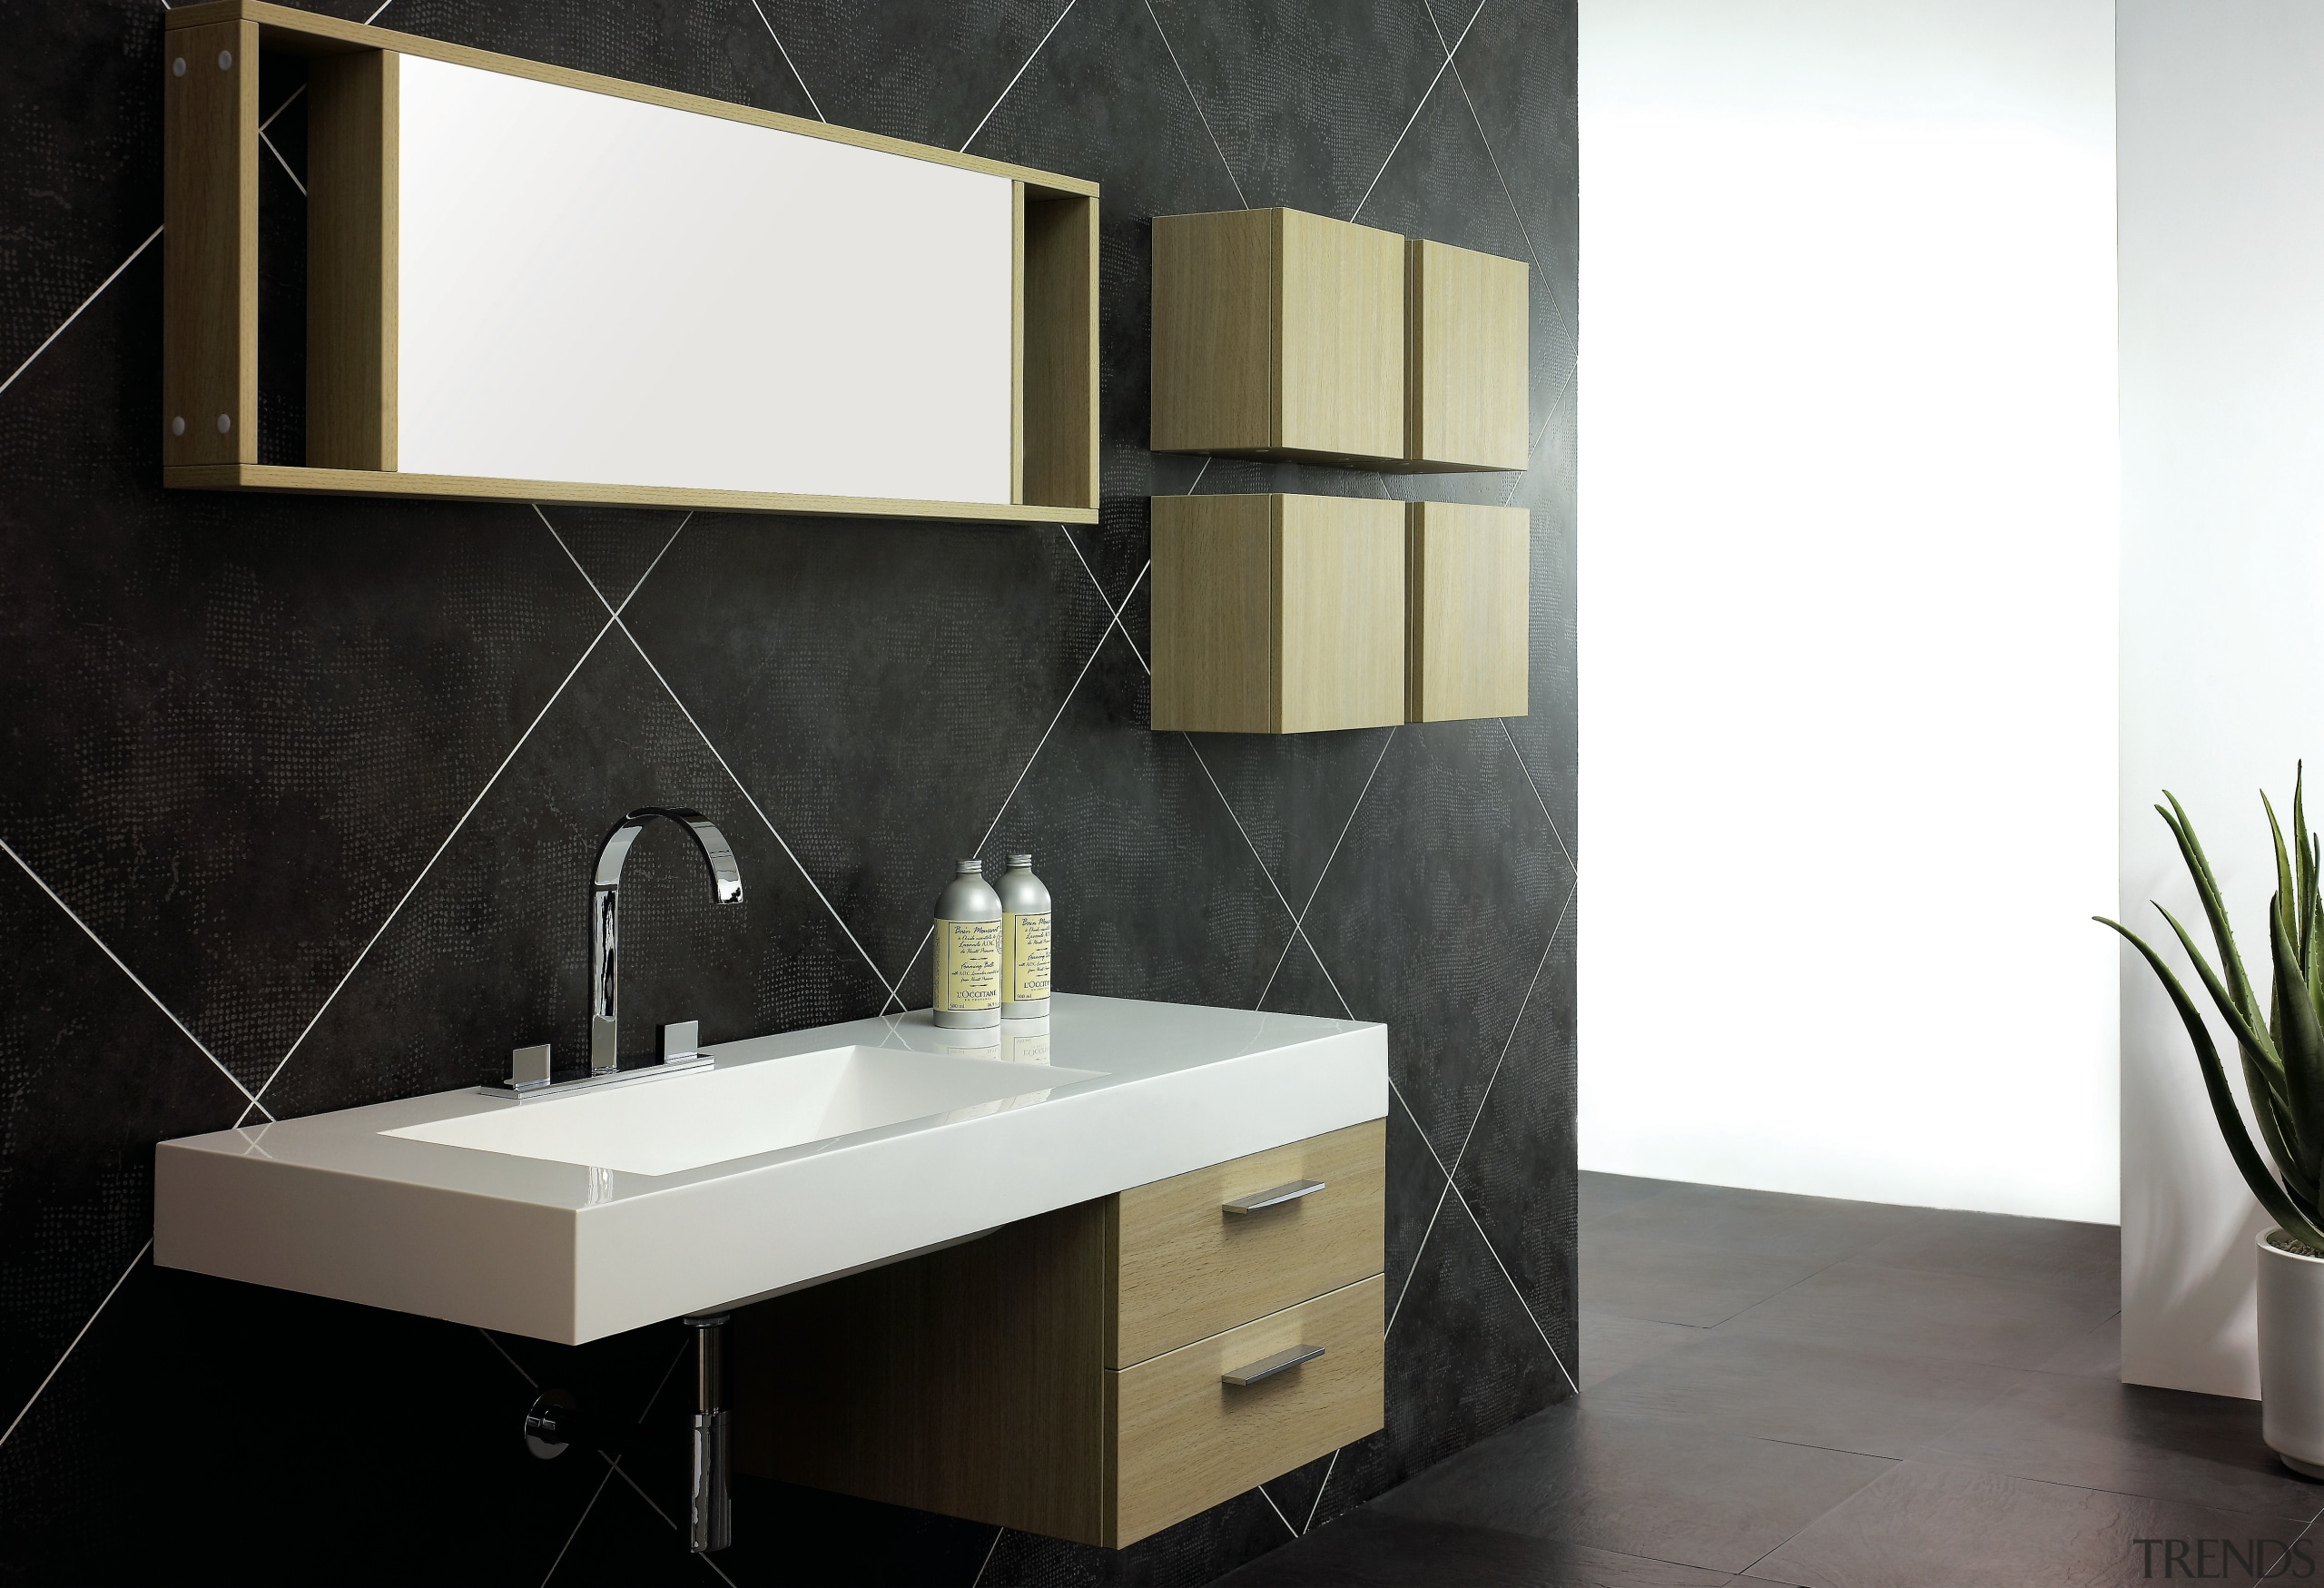 A view of a vanity from Tonusa. - angle, bathroom, bathroom accessory, bathroom cabinet, floor, furniture, interior design, product, product design, sink, tap, tile, wall, black, white